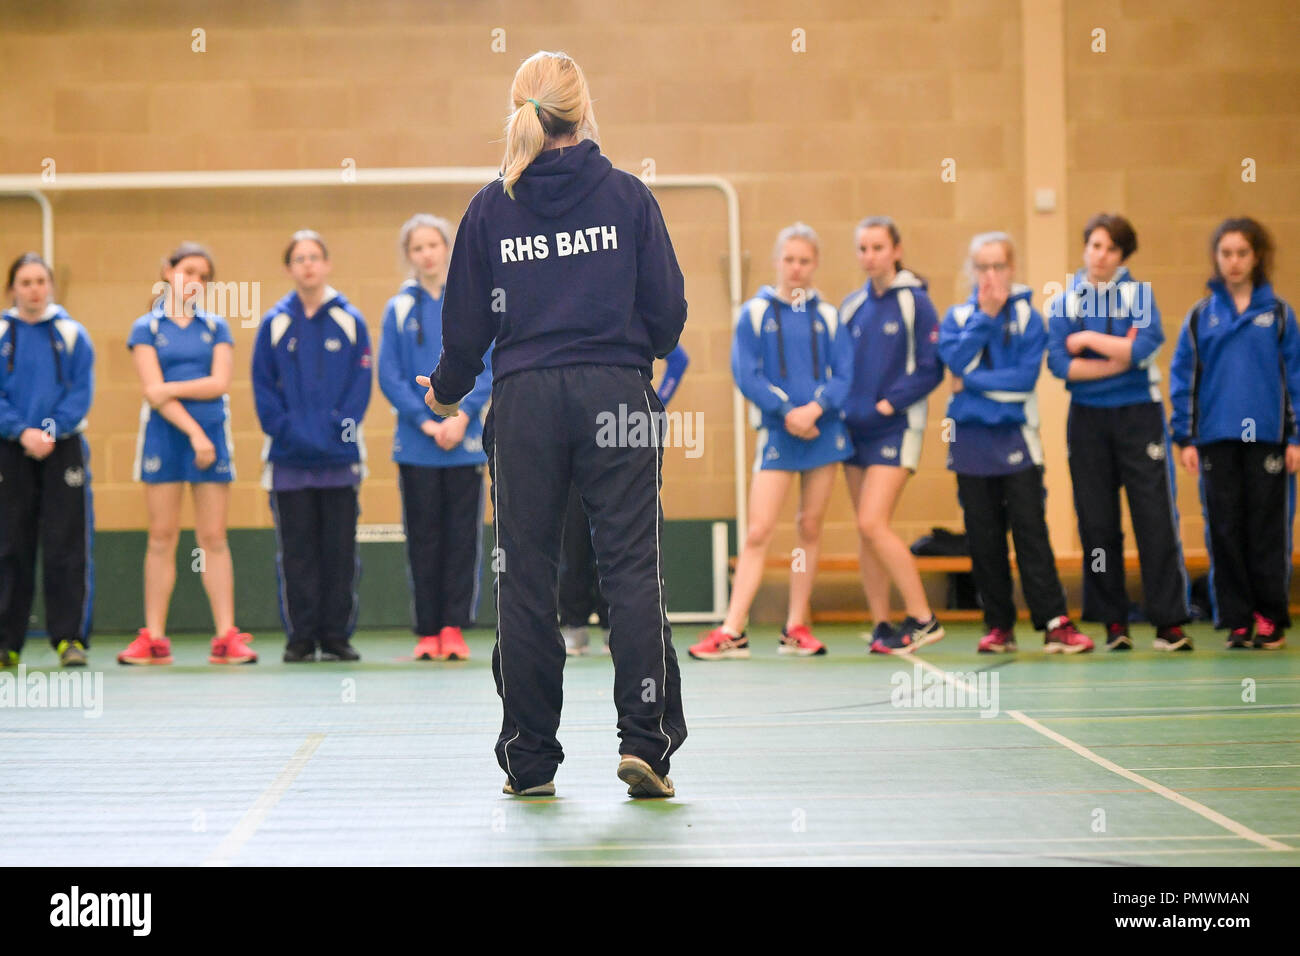 Uk Physical Education Teacher Stock Photos Amp Uk Physical